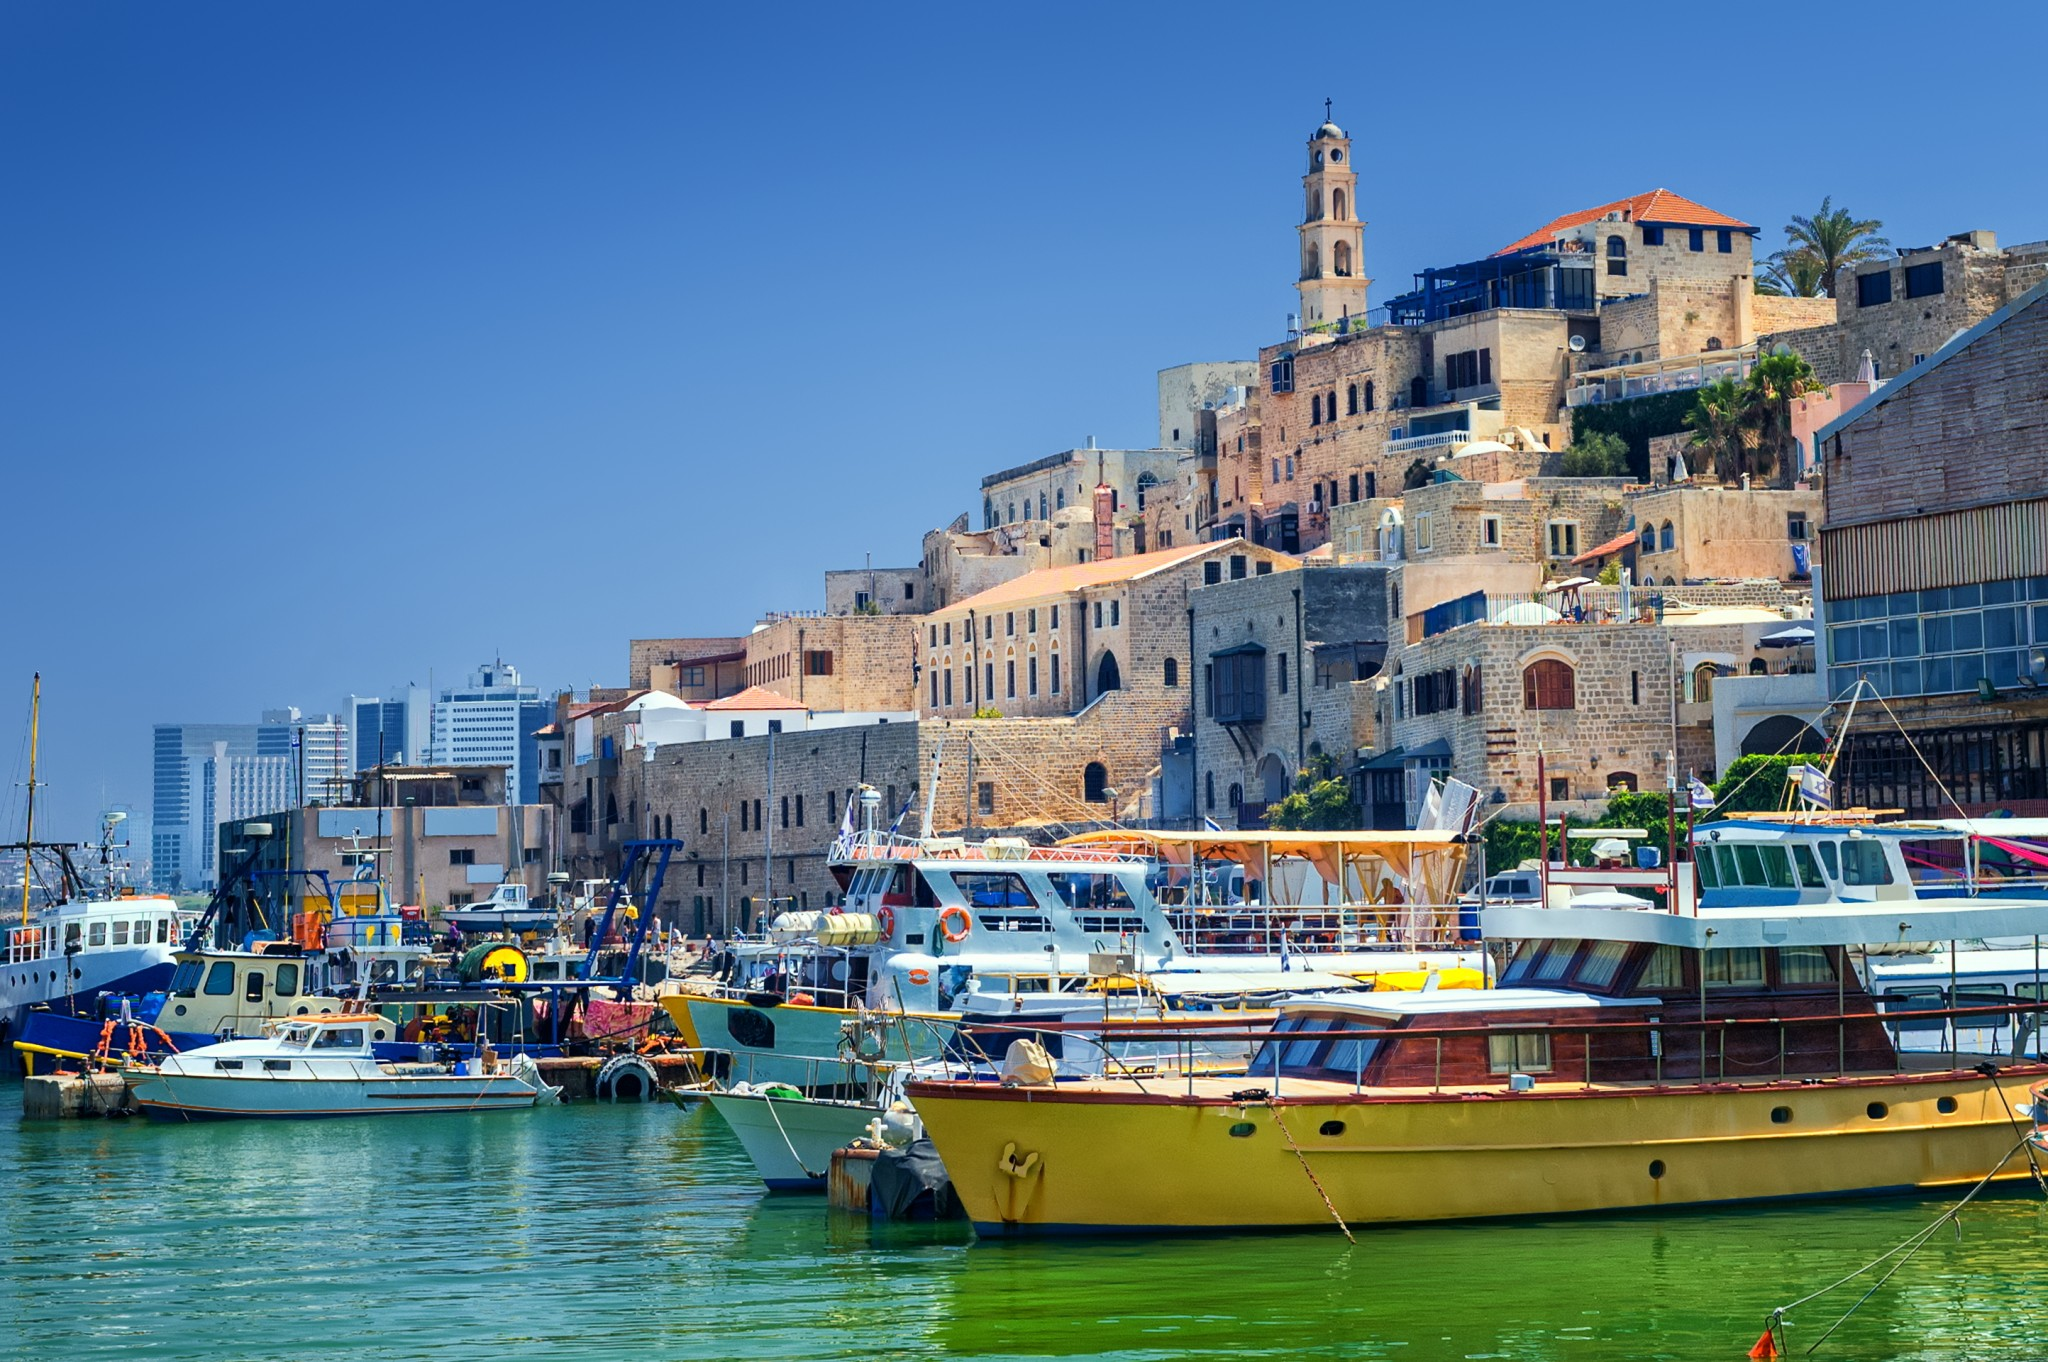 A view of Old Jaffa. Photo via www.shutterstock.com